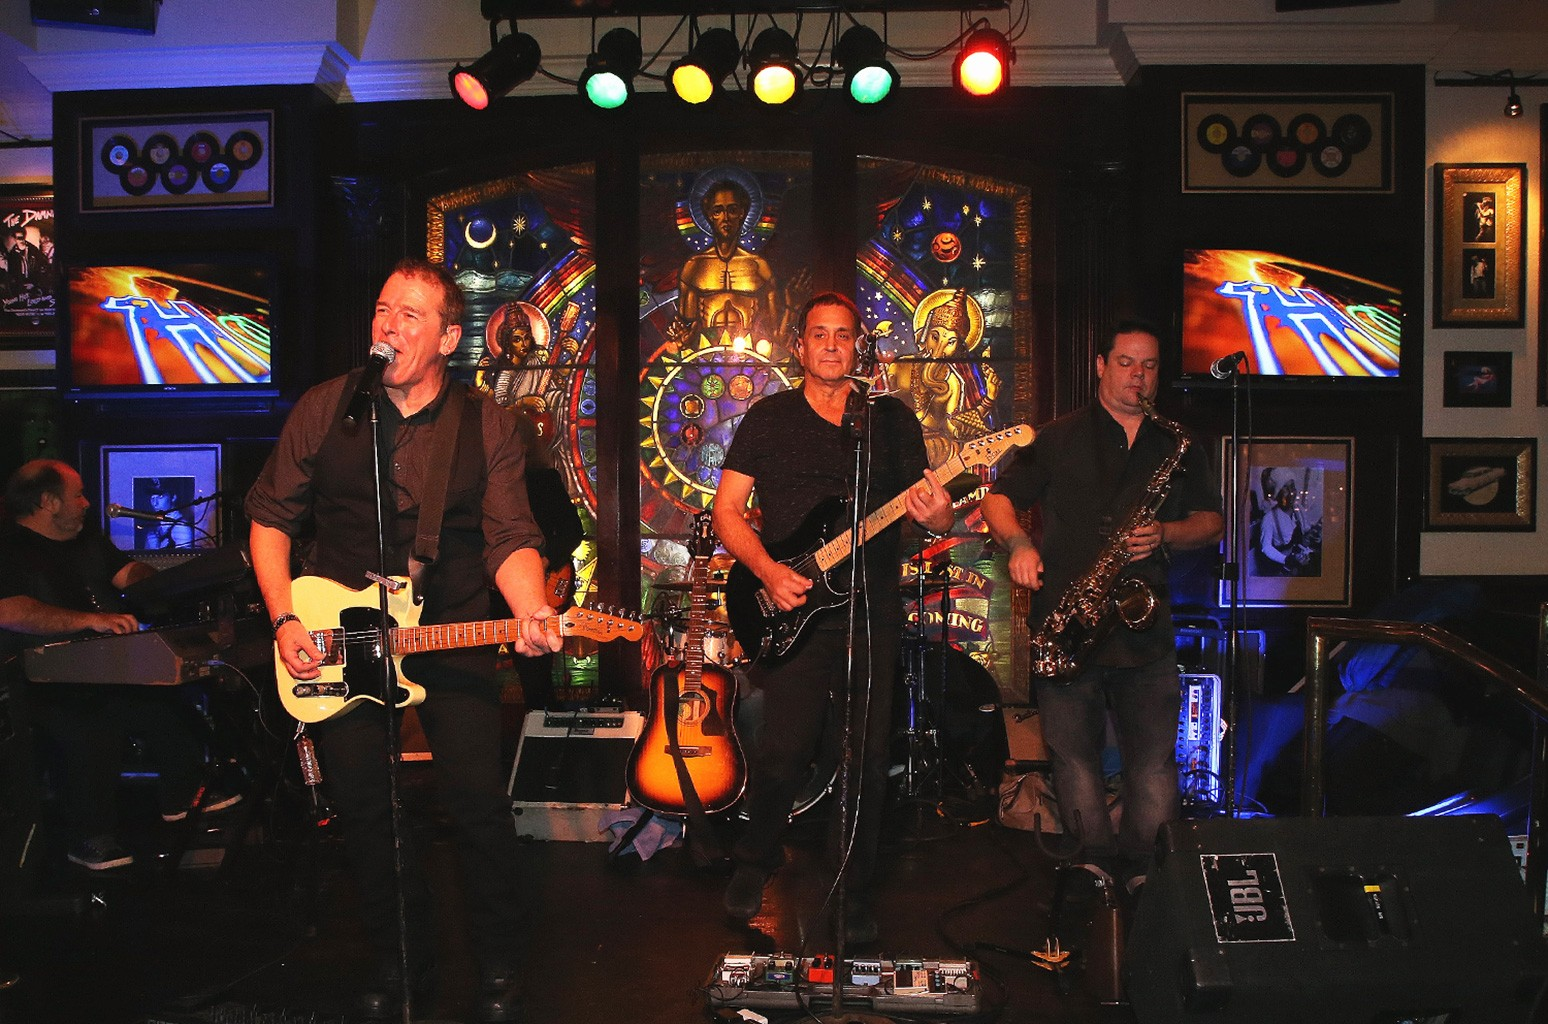 The B Street Band performs at the Hard Rock Cafe's 20th Anniversary bash on Nov. 15, 2016, in Atlantic City, NJ.